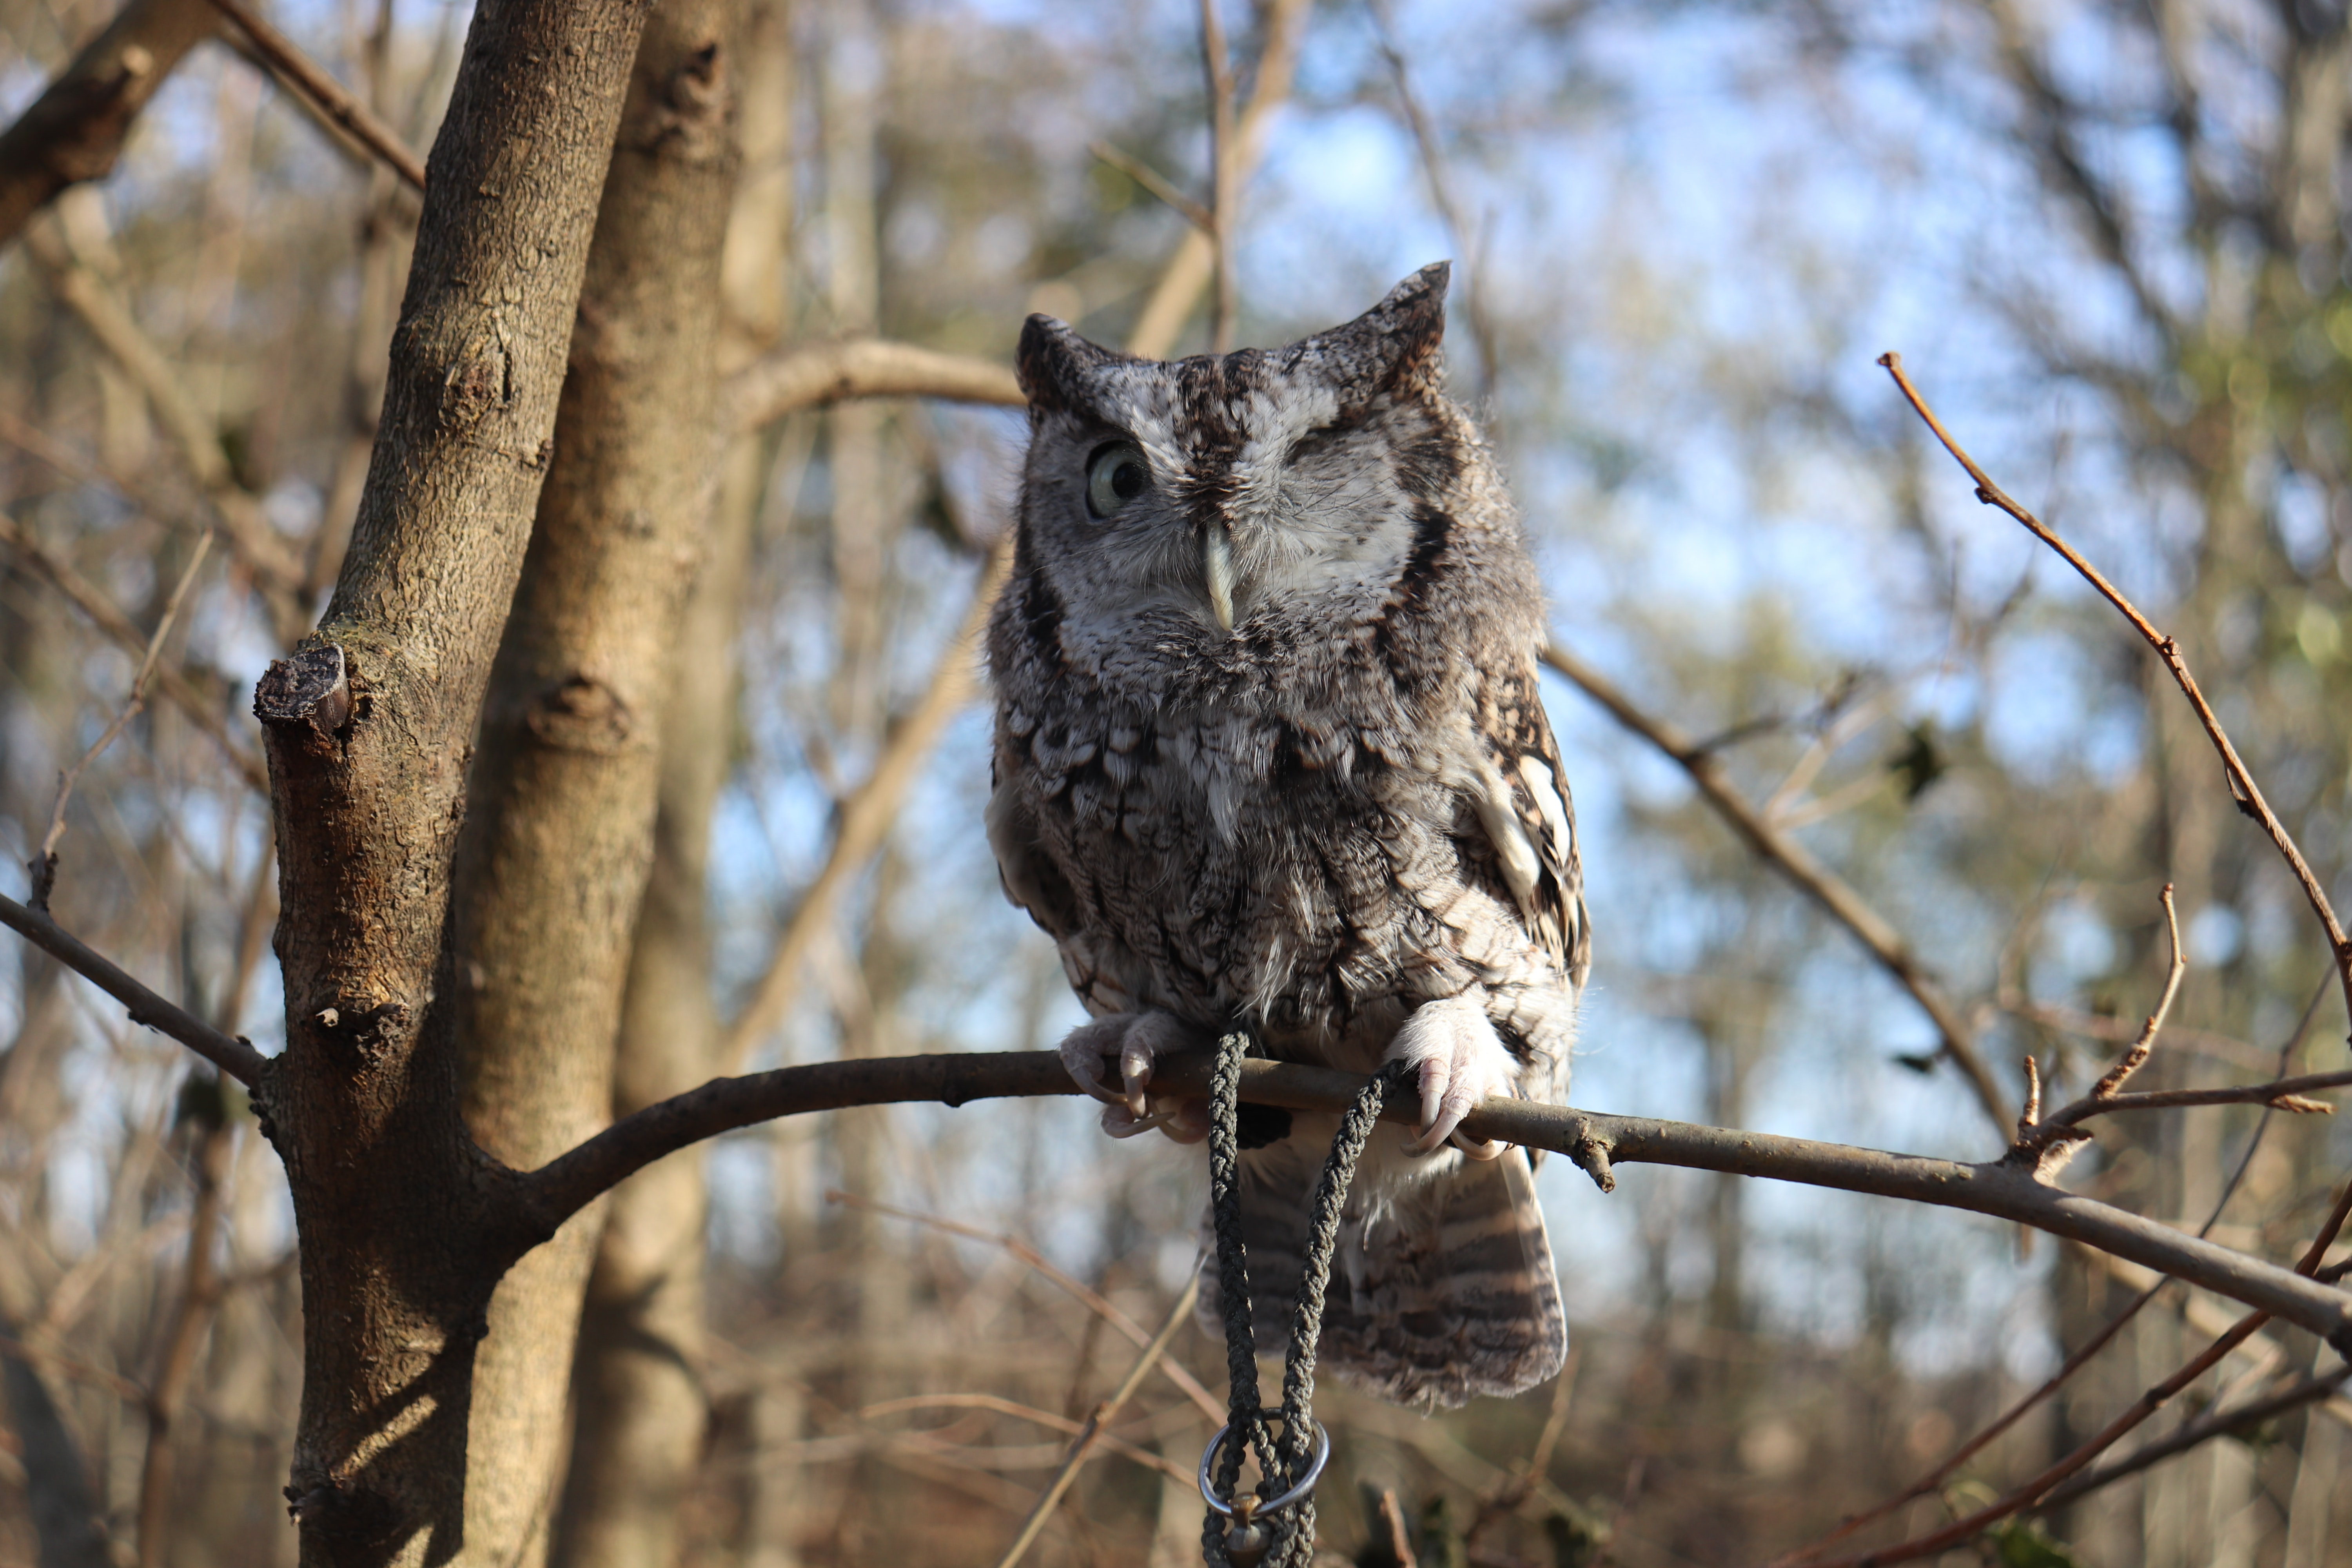 As wise as this owl in this daylit forest.